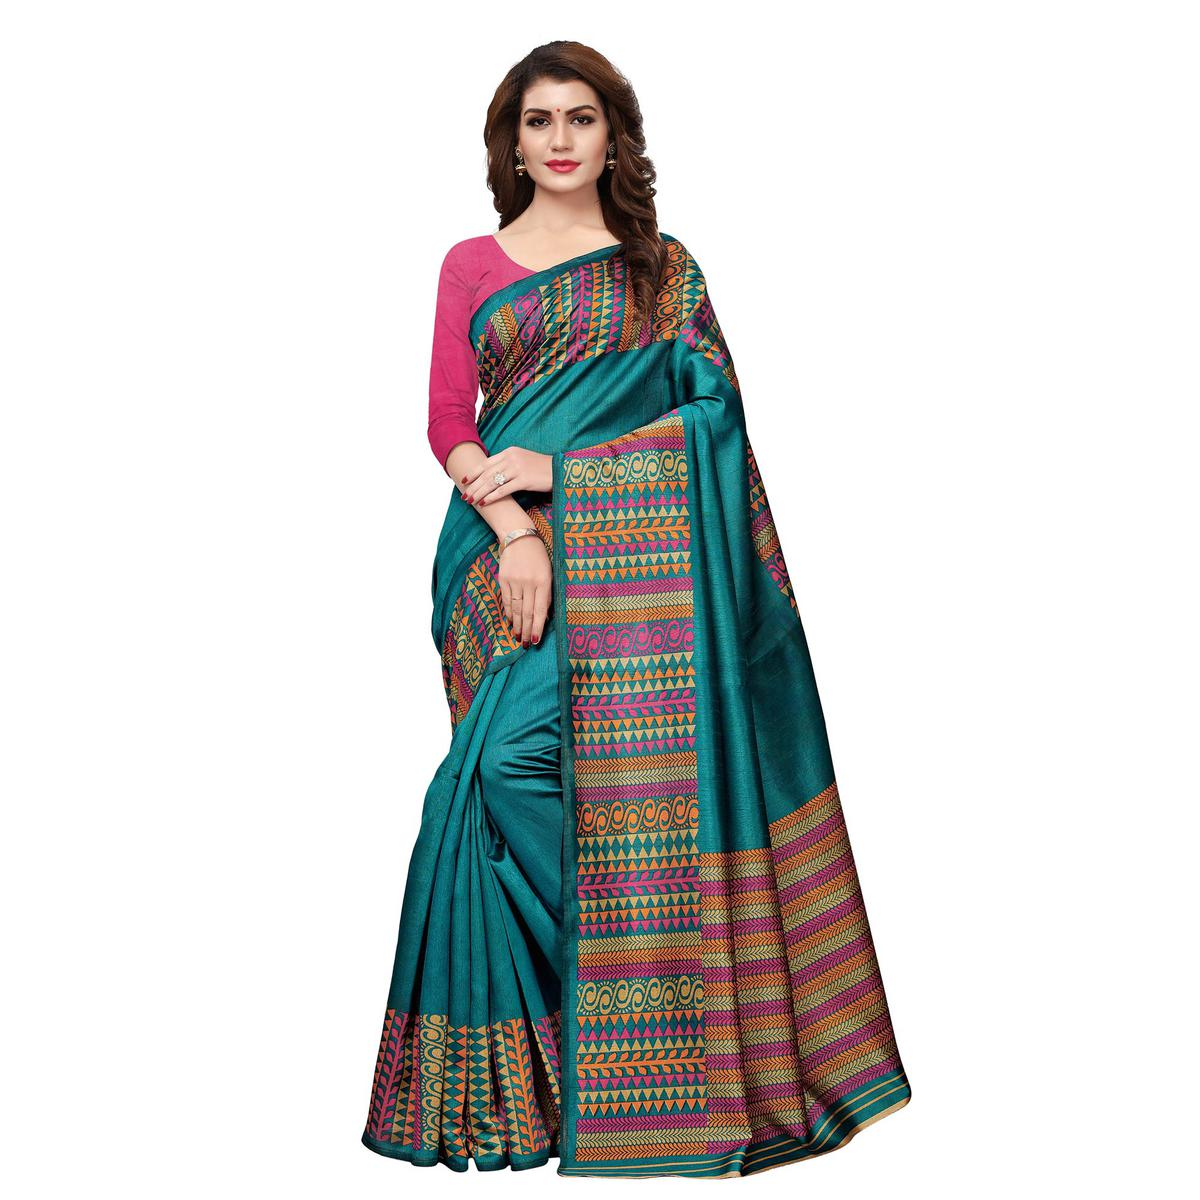 Gorgeous Teal Blue Colored Casual Printed Art Silk Saree